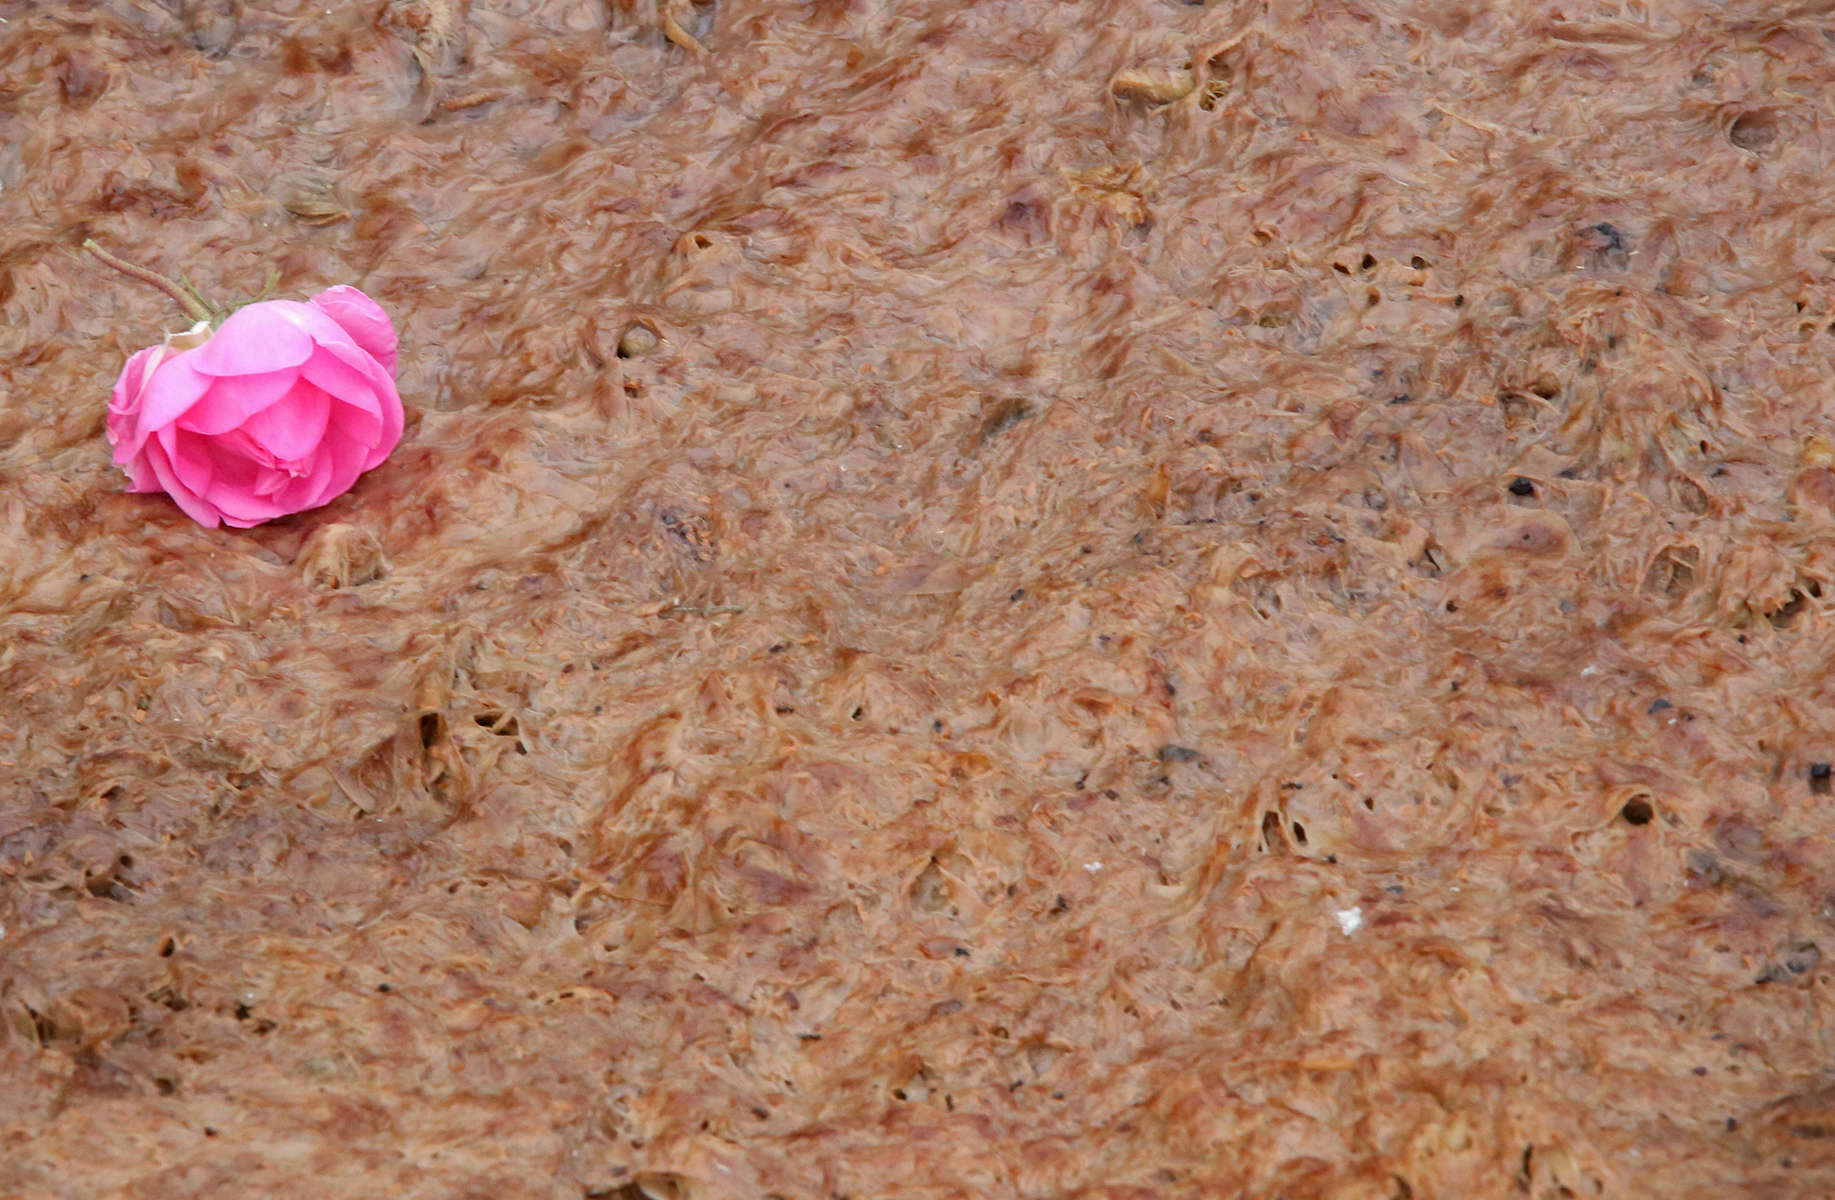 The output of rose petals from distillation at Lema distillery in Kazanlak, Bulgaria, seen on May 24, 2018, is used to fertilize its rose gardens. Each of Lema's caldrons has a 5 ton capacity, and it takes 3 to 5 tonnes of roses to produce just 1 kg of rose oil. Lema, a family-owned rose plantation and production facility of over 40 years, produces mainly rose oil, rose water, lavender oil, and souvenirs. The distillery borders Arsenal (not seen,) Bulgaria's oldest weapons-maker (privatized after the fall of the Soviet Union in 1989.) Arsenal employs around 10,000 people, and has its own kindergarten and hospital on the grounds.Photo by: Yana Paskova for National Geographic Traveler